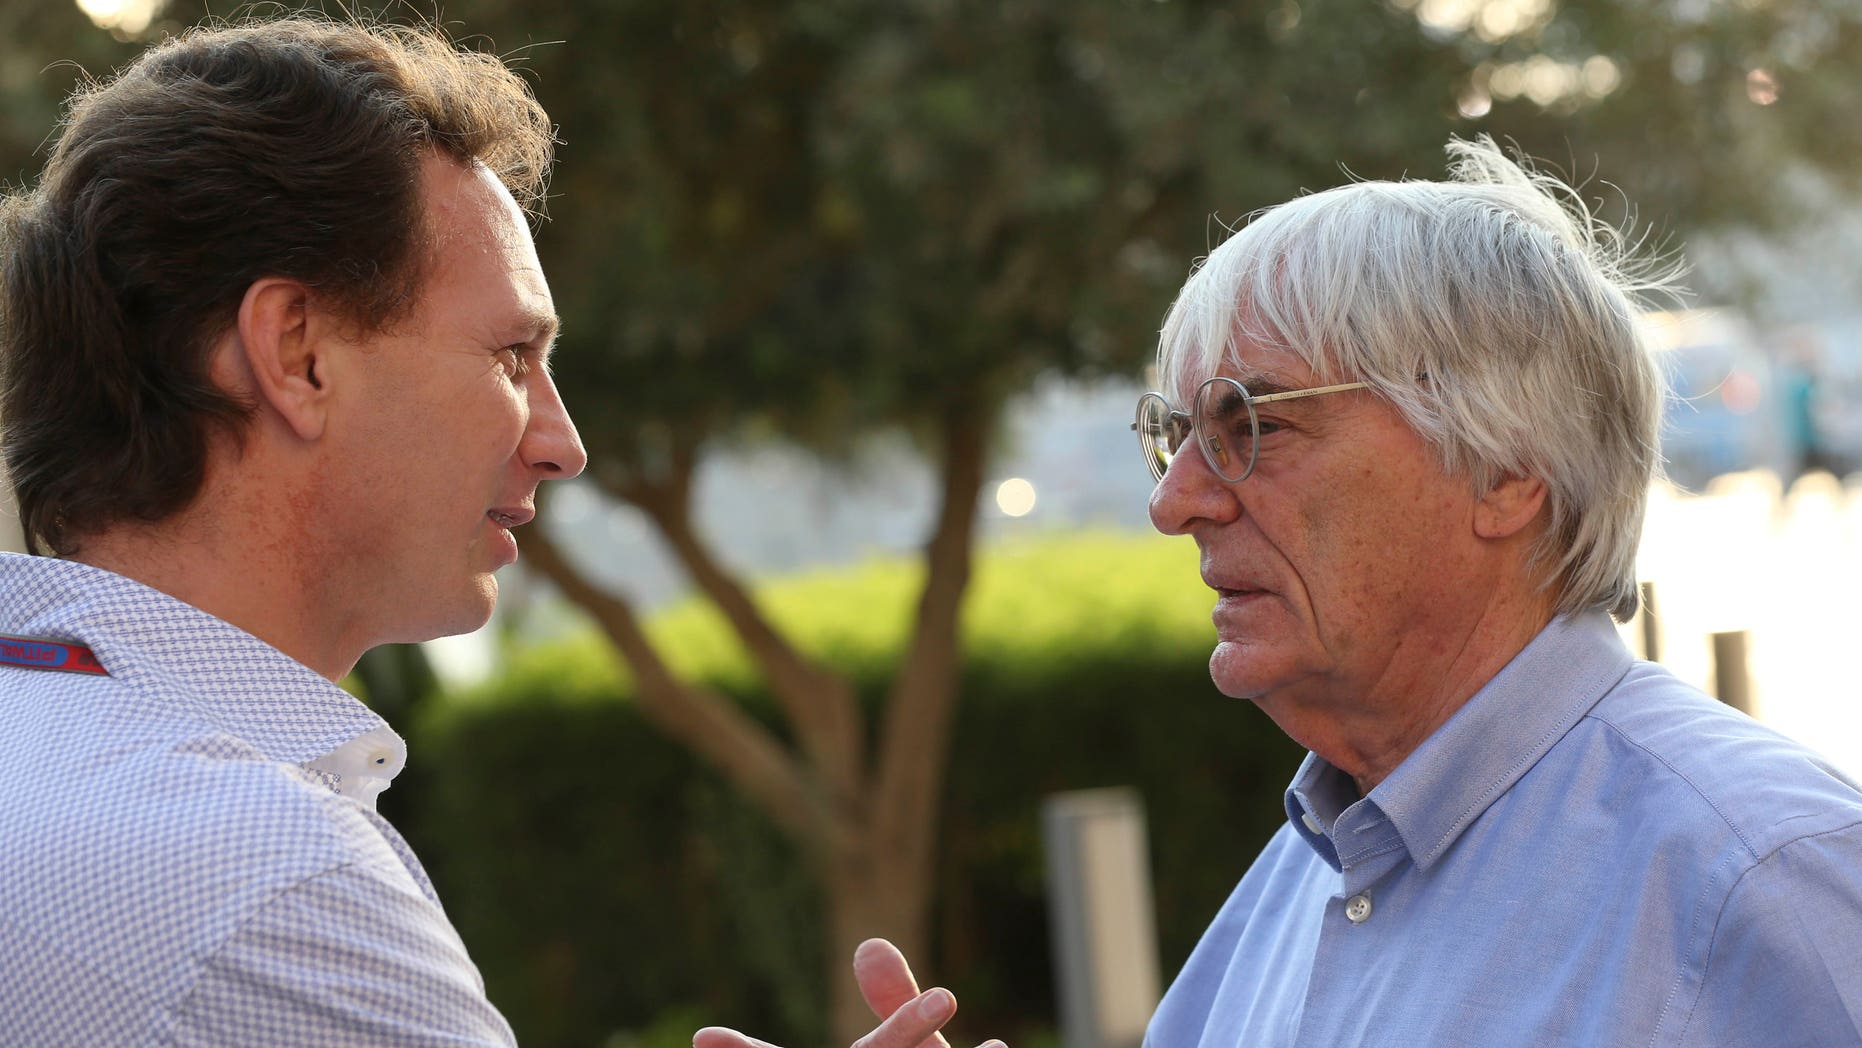 "FILE - In this Thursday, Nov. 1, 2012 file photo, Red Bull team principal Christian Horner, left, talks with Bernie Ecclestone, president and CEO of Formula One Management, at the Yas Marina racetrack in Abu Dhabi, United Arab Emirates. With Ecclestone's Formula One future in doubt amid bribery allegations, one of the most influential team bosses on Wednesday, Jan. 15, 2014 said the series' prosperity relies on him remaining in charge. Christian Horner, team principal of reigning constructors' champion Red Bull, believes Ecclestone is ""the only guy"" who can ensure F1 maintains its global reach as the premier motorsport series. (AP Photo/Luca Bruno, File)"